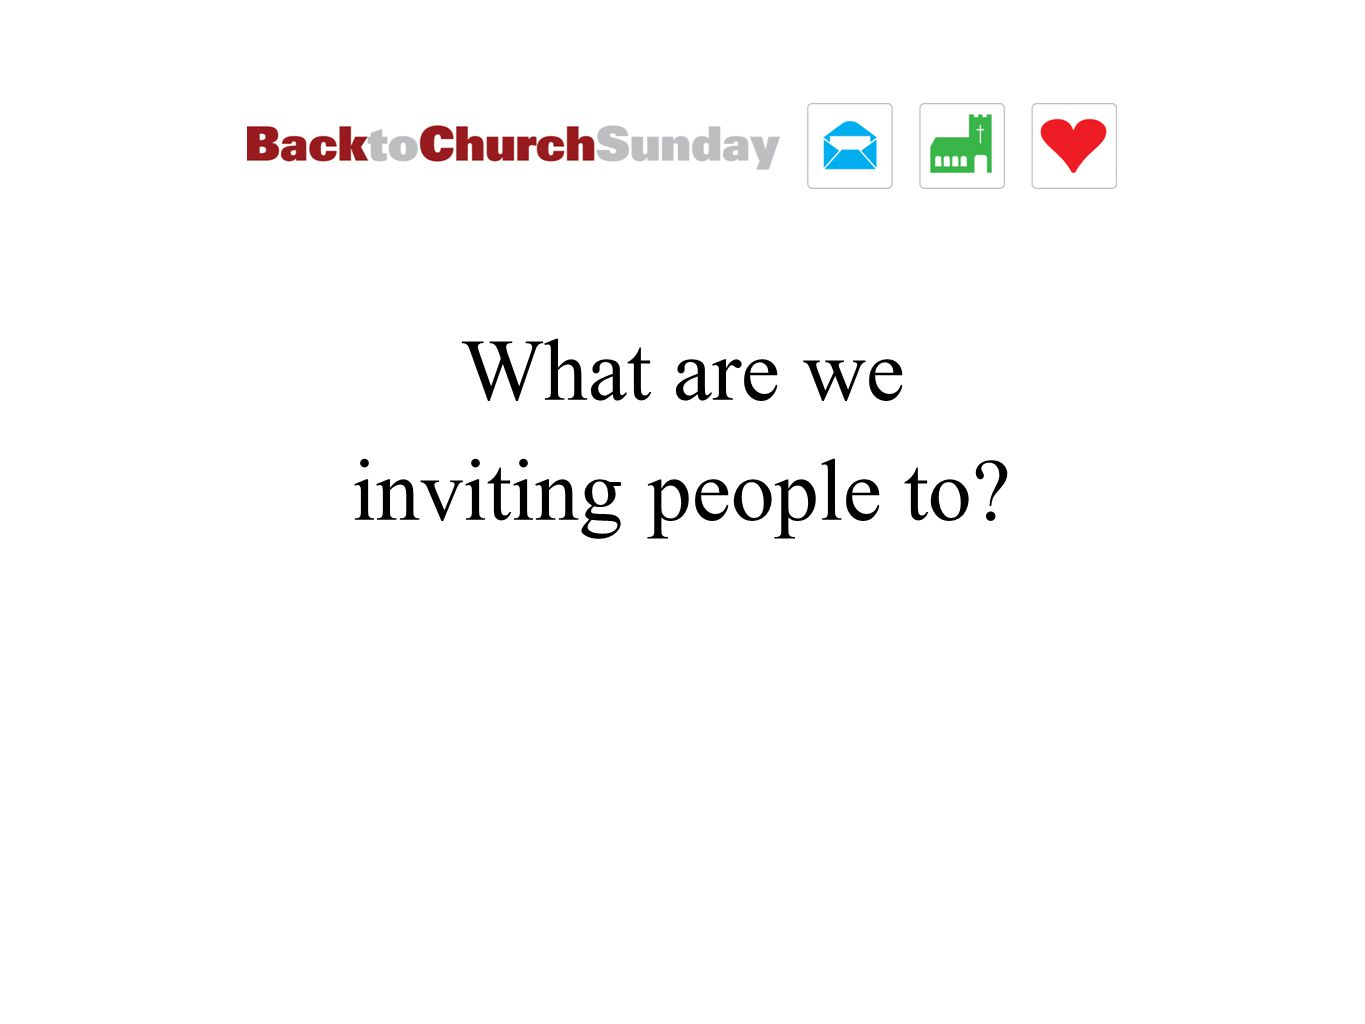 What are we inviting people to?